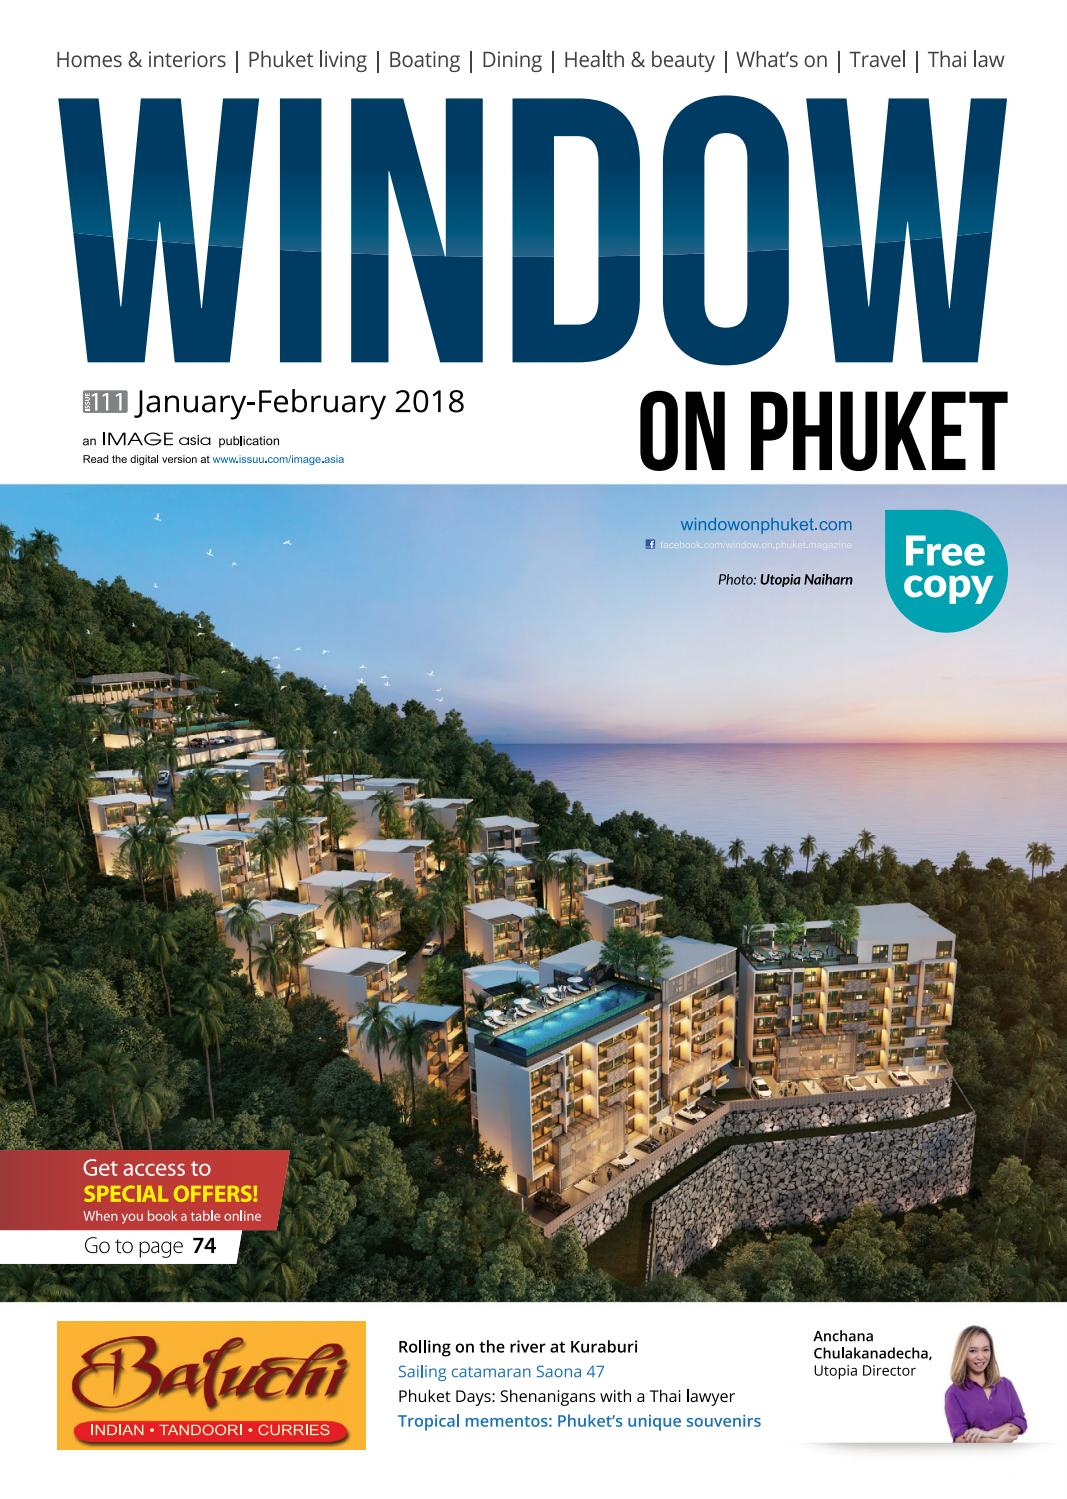 WINDOW on Phuket Jan-Feb 2018 by image-asia - issuu